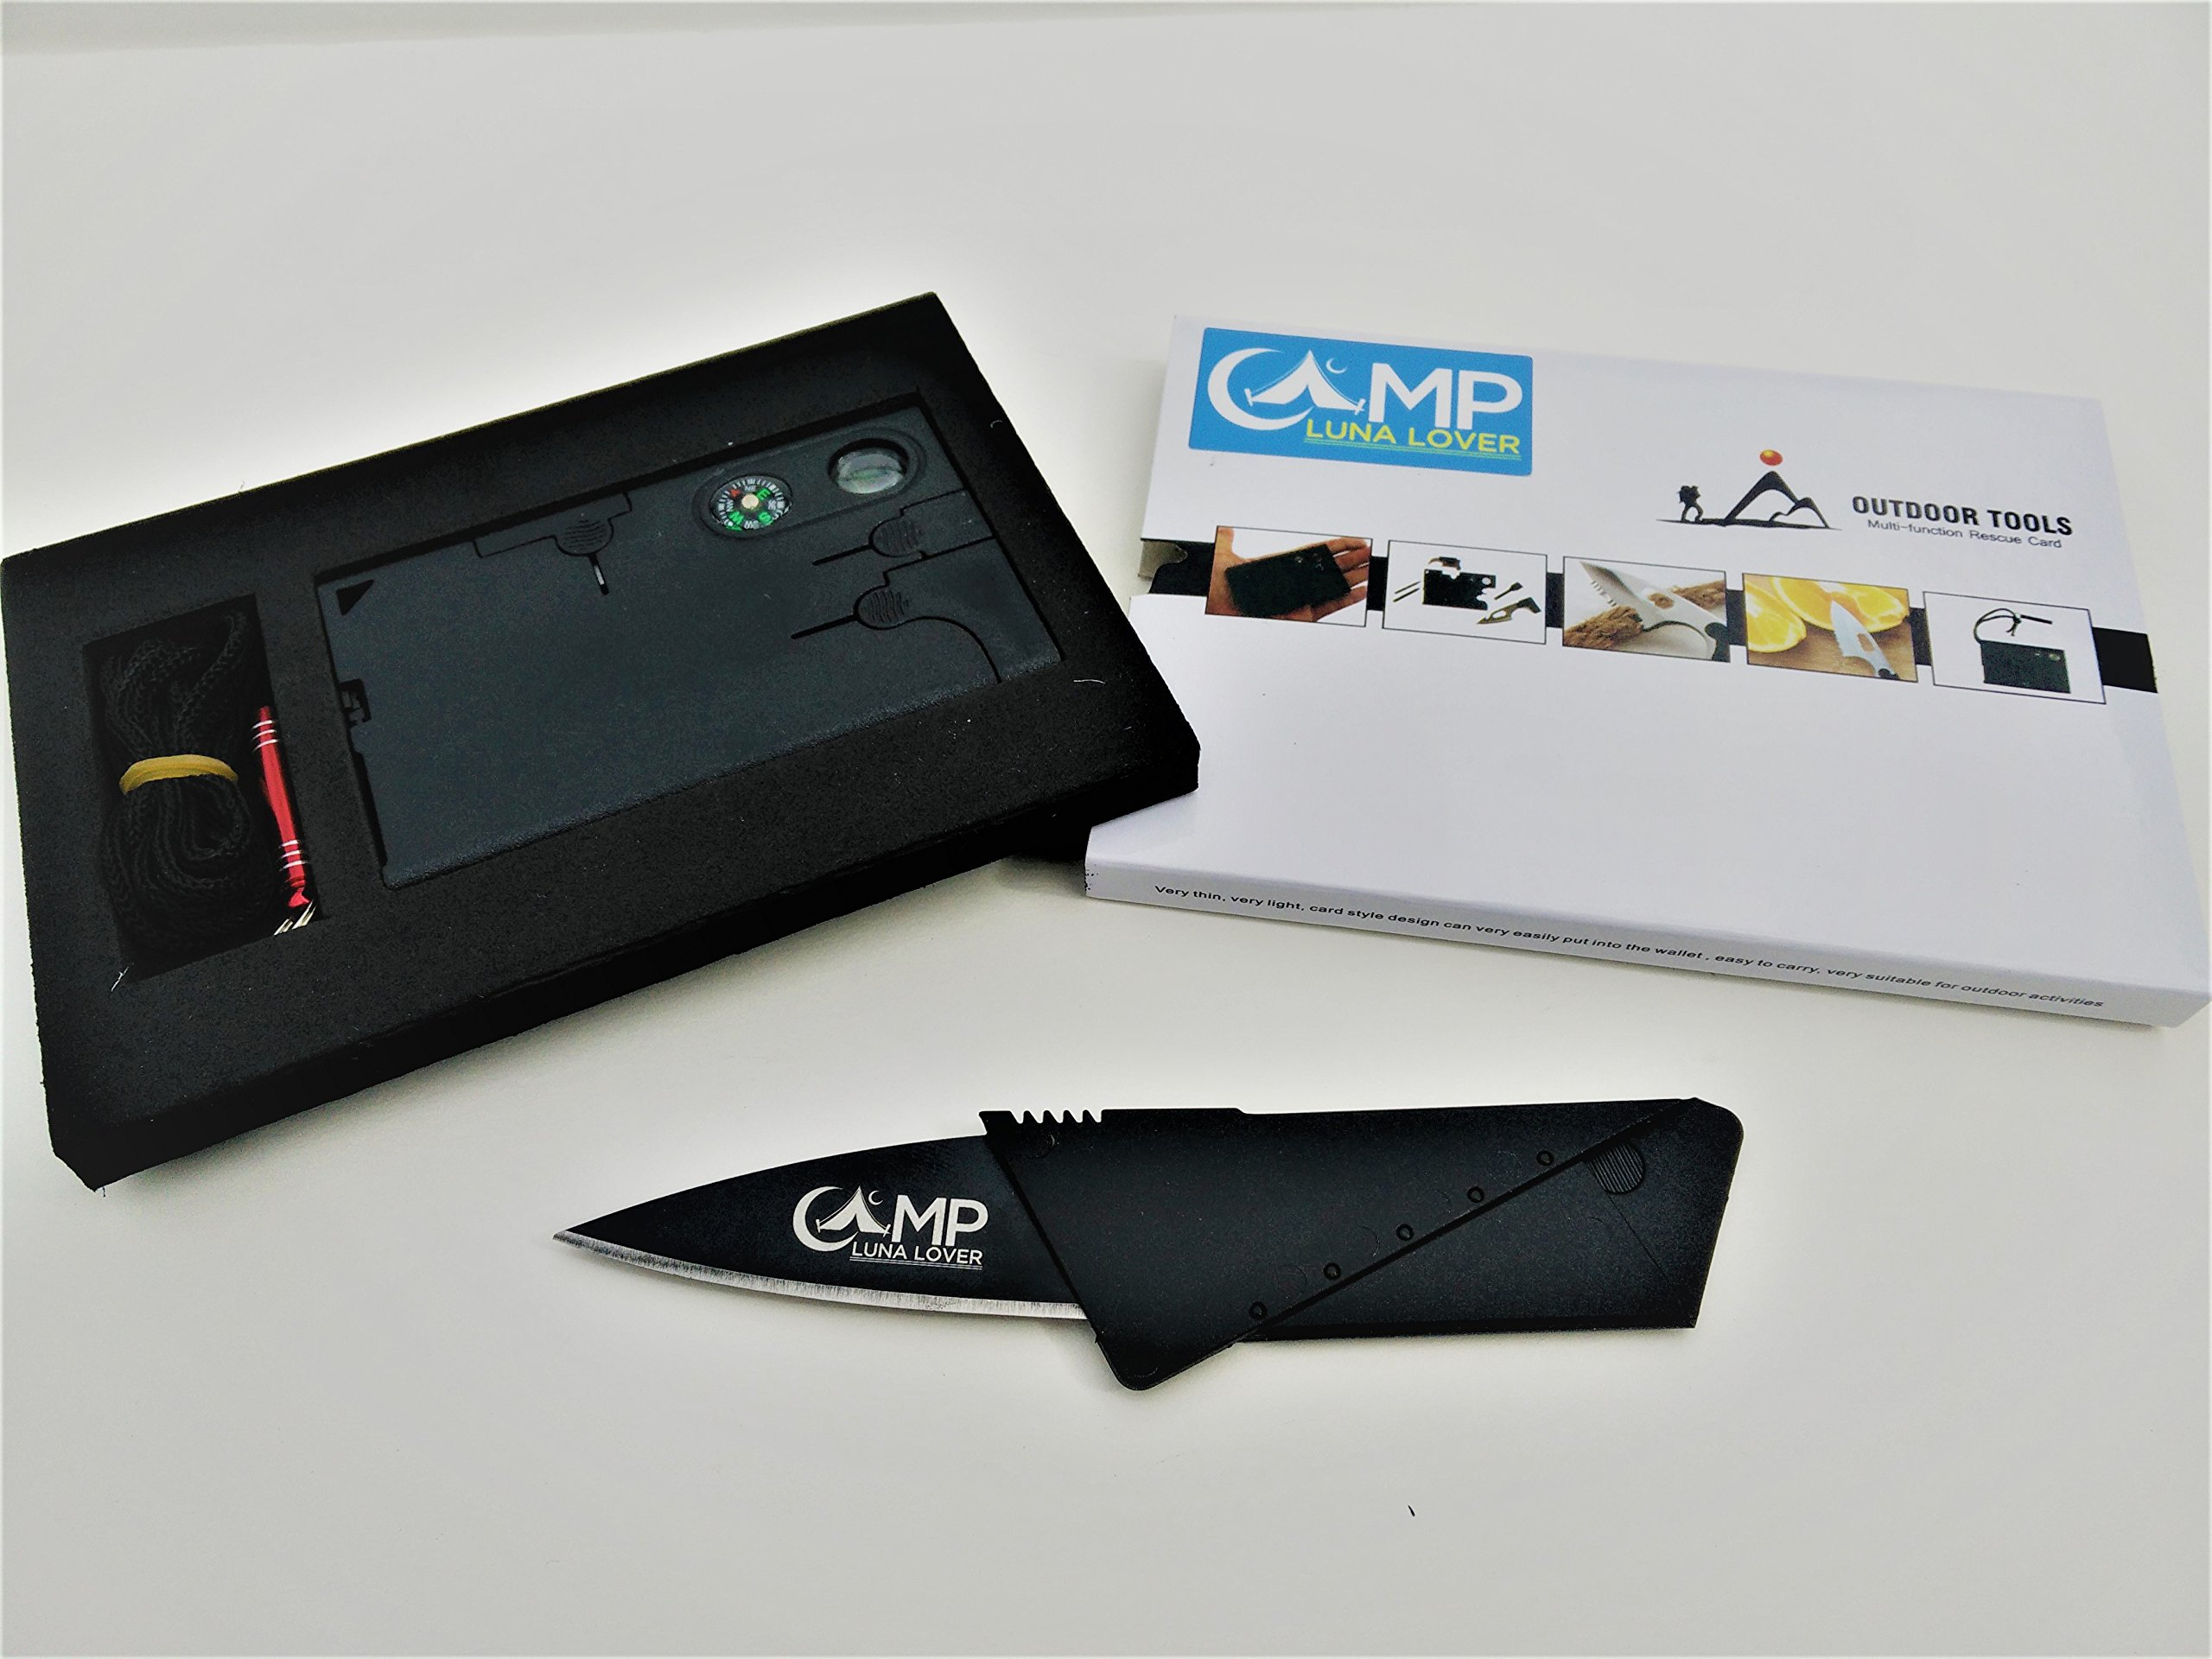 Credit Card Tool Survival Pocket Knife Kit. Best 18 in 1 Multitool Emergency Companion by Camp Luna Lover